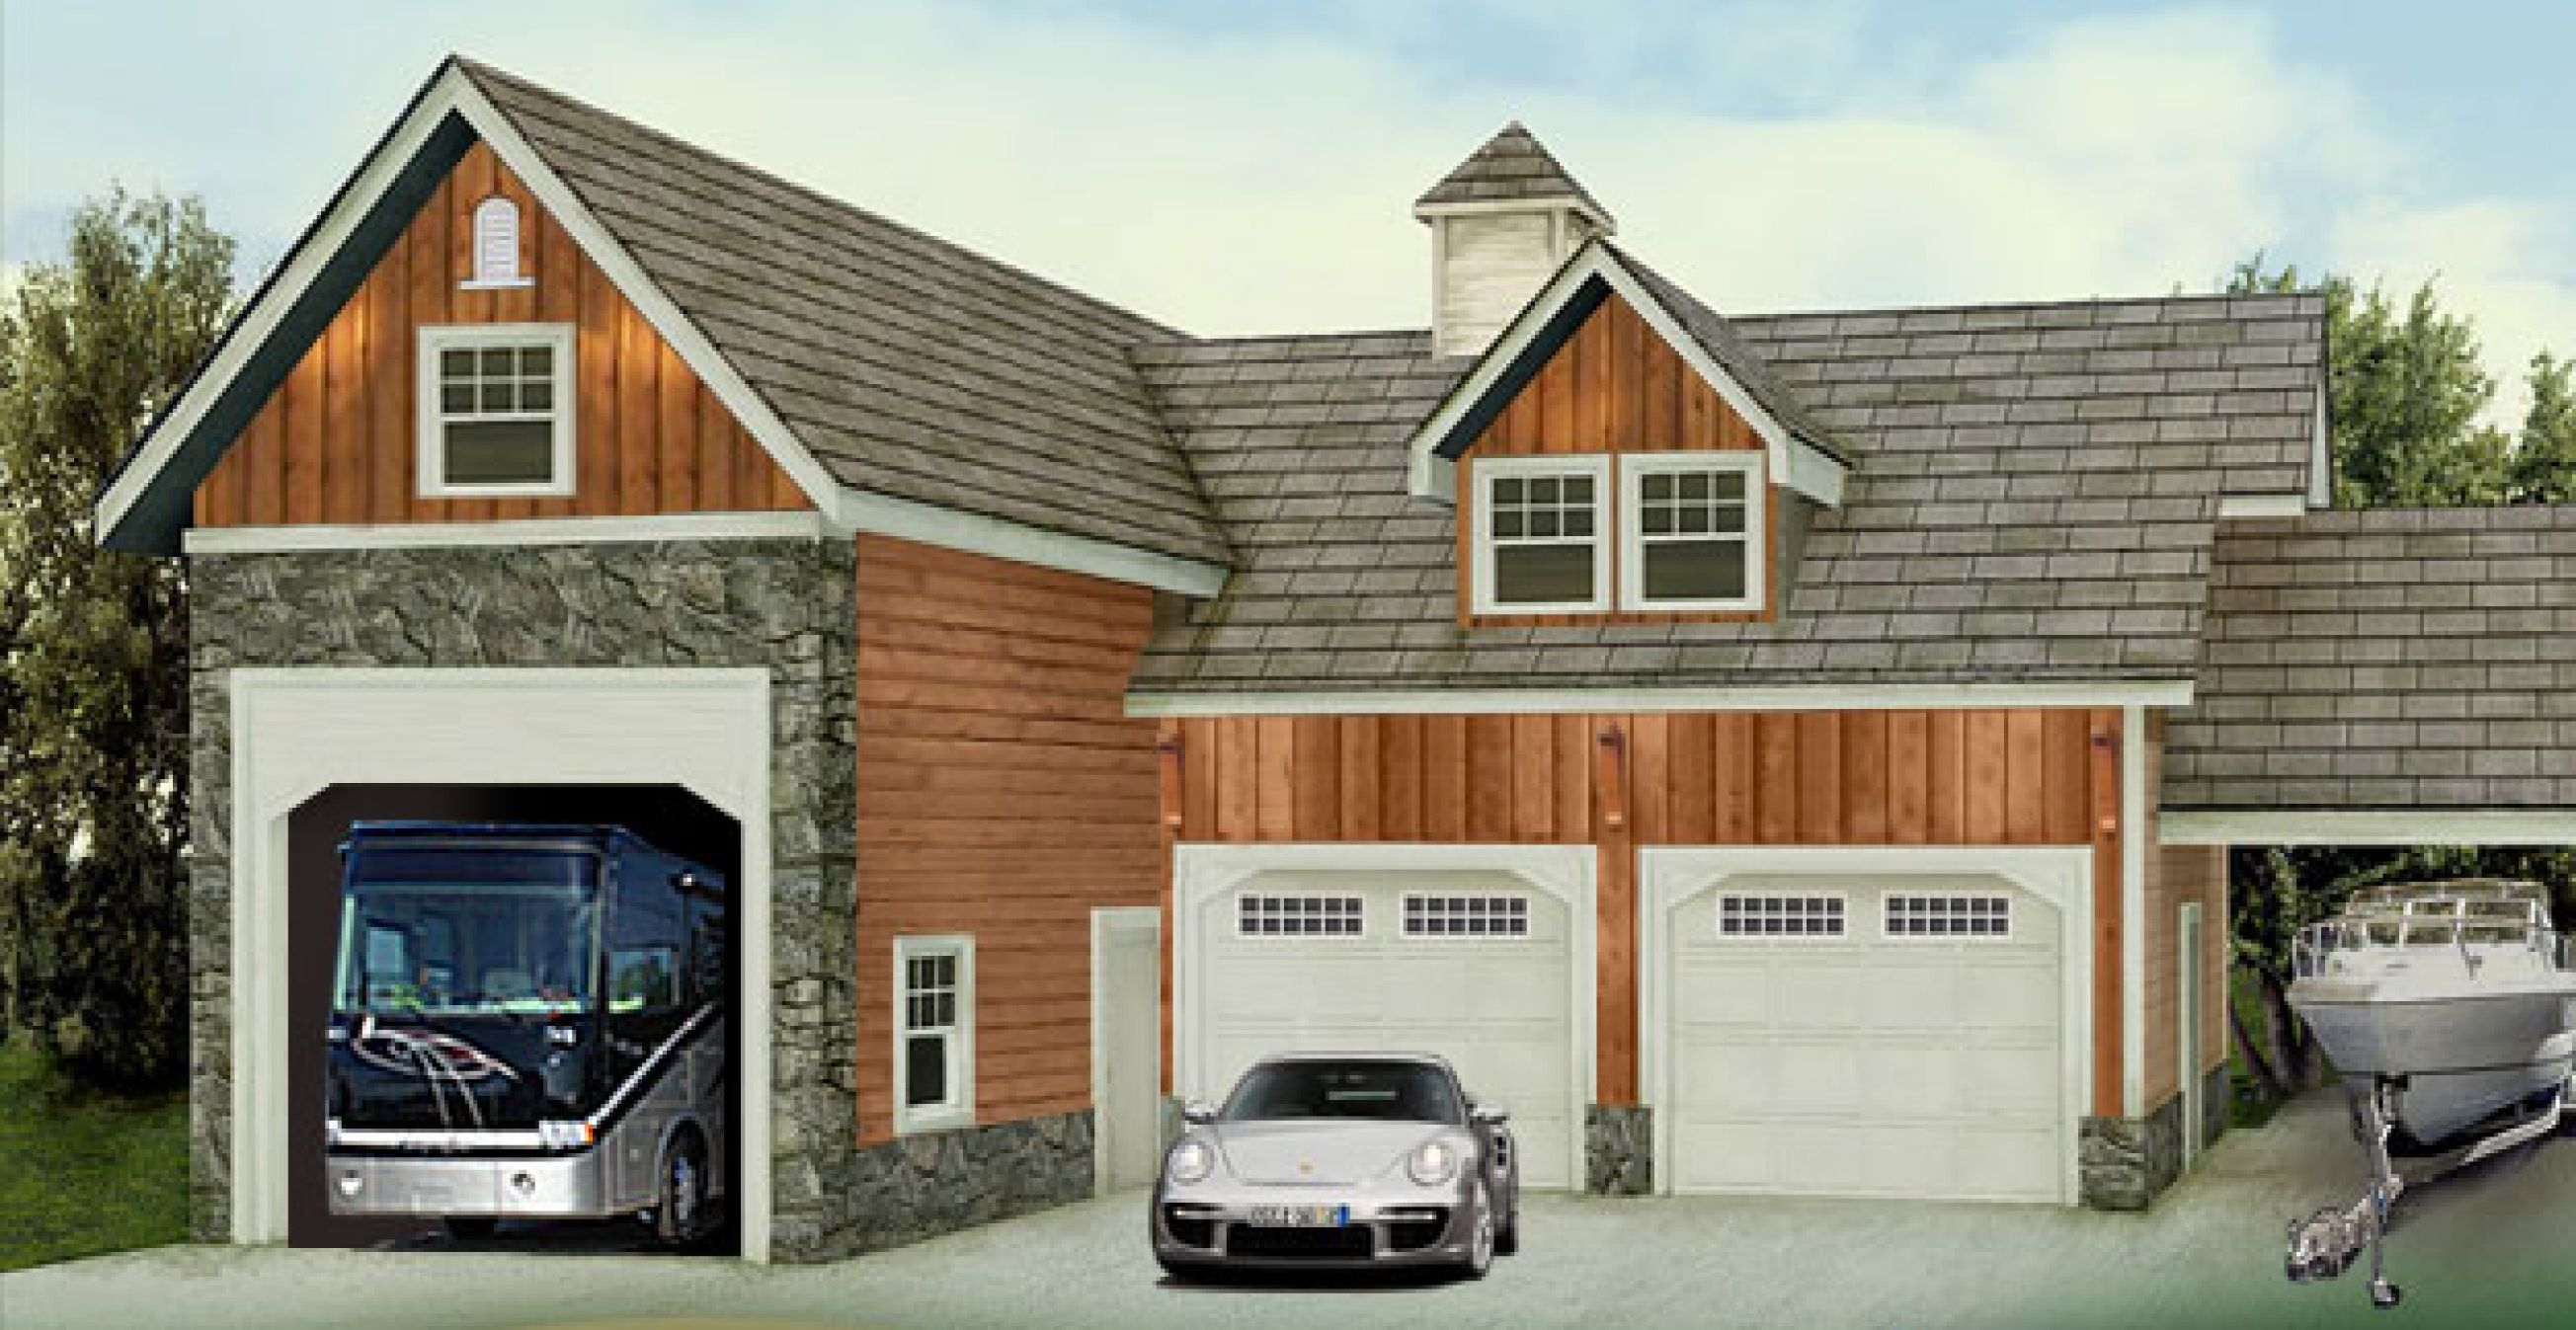 Rv garage i 39 d convert the two smaller garages into a for Motorhome garage kits